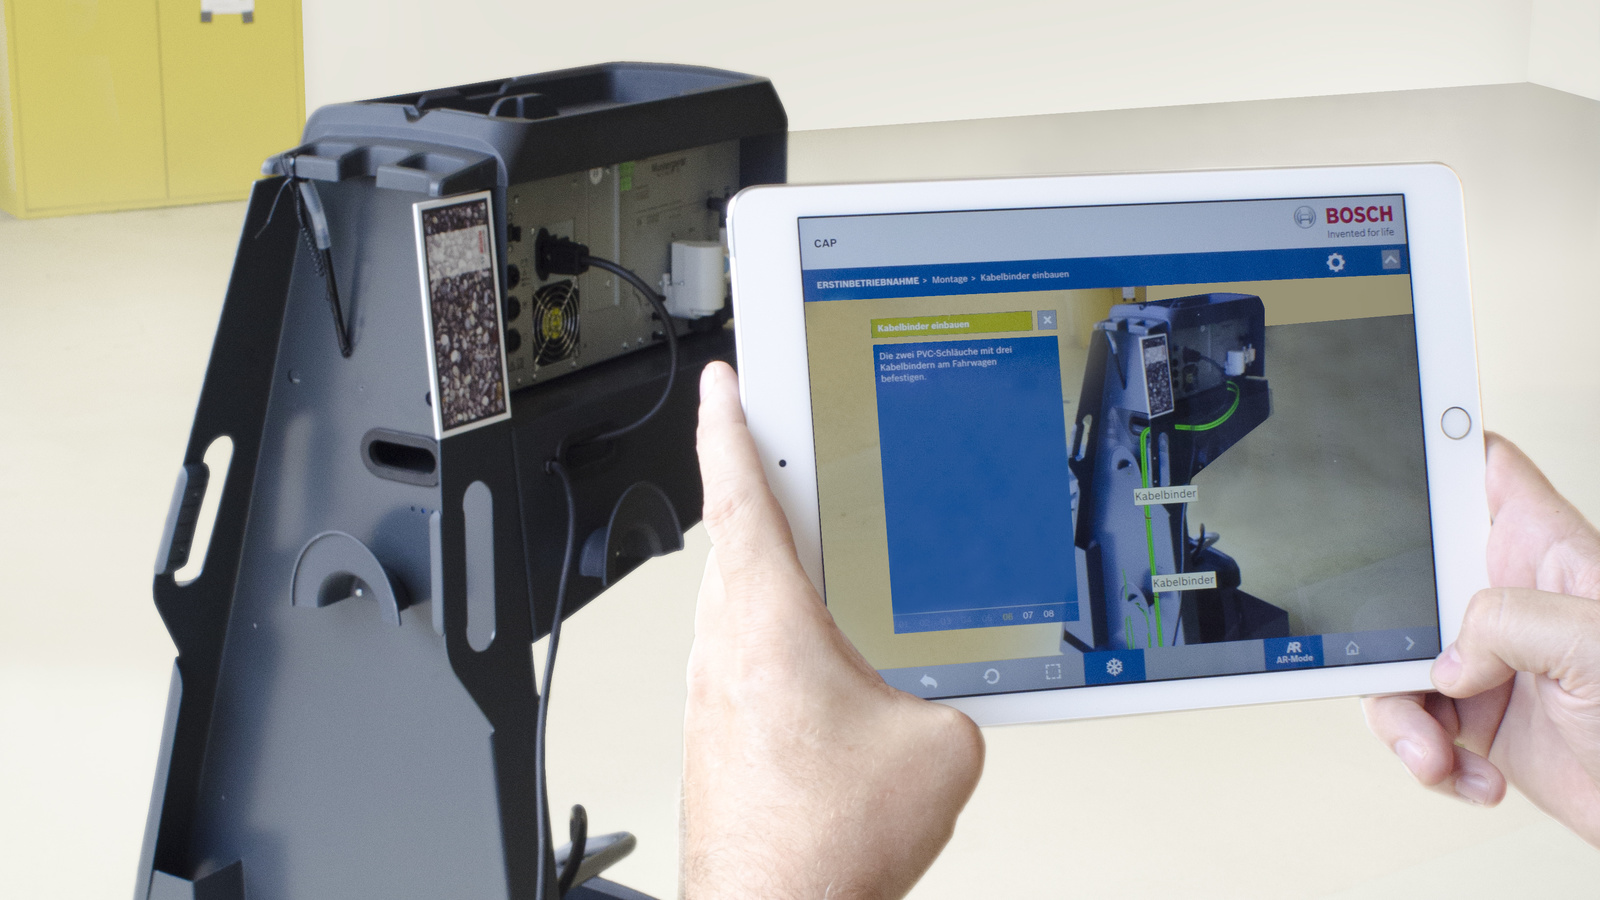 For The First Time Bosch Uses Augmented Reality For The Product